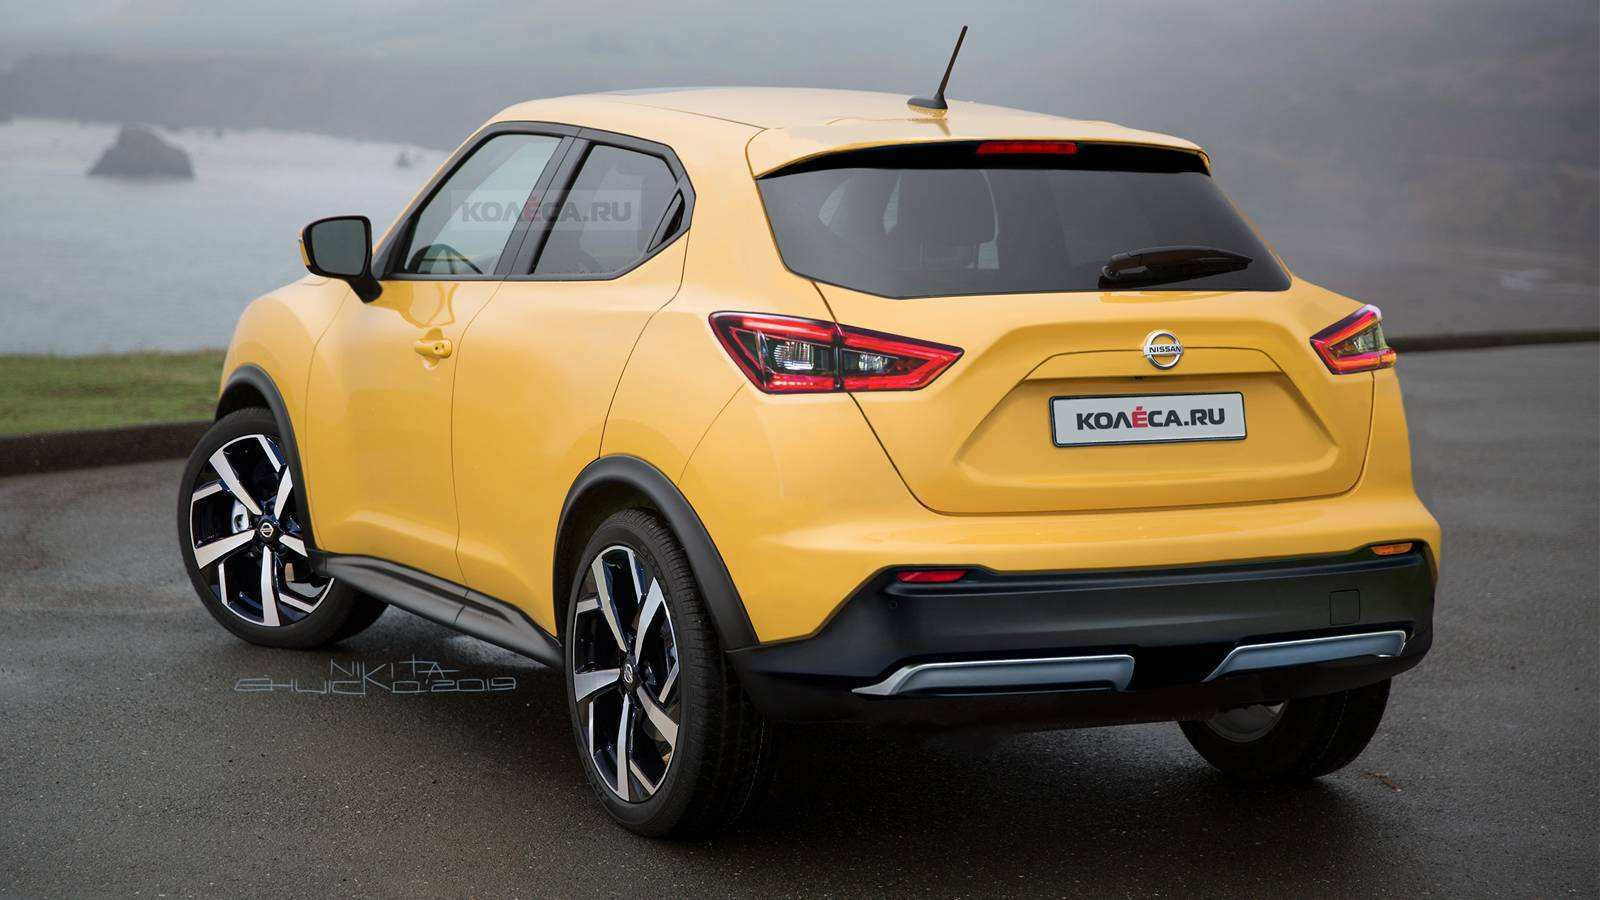 95 All New Nissan Juke 2020 Dimensions Review And Release Date